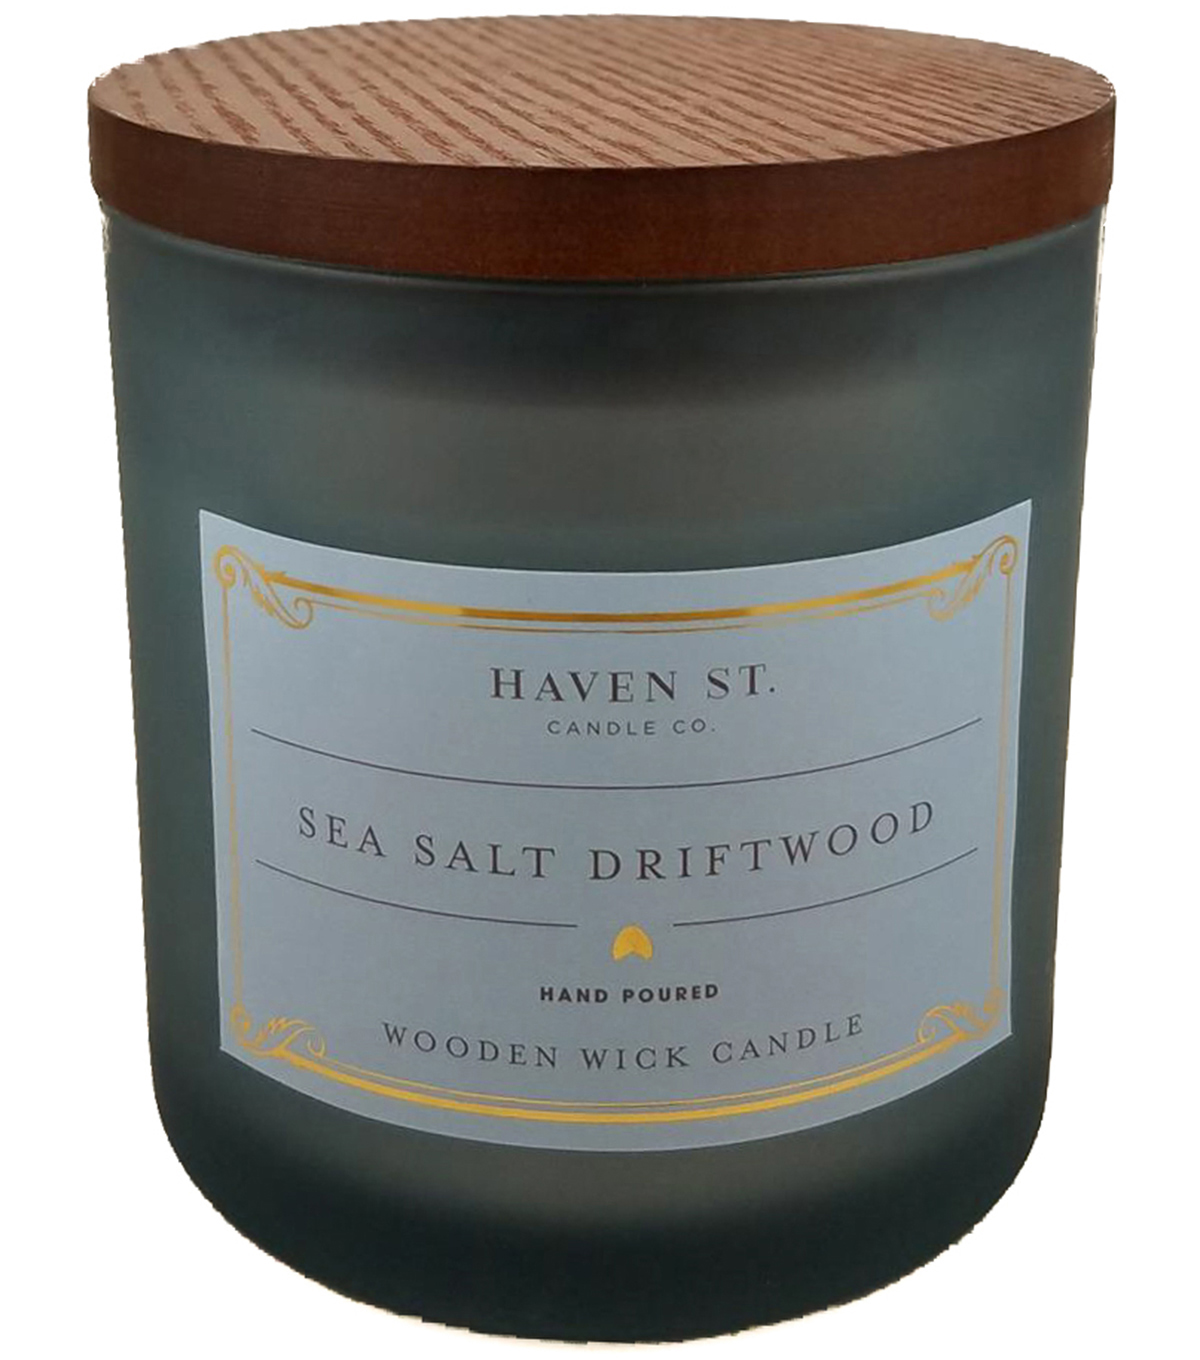 Haven St. 12oz Wooden Wick Jar Candle-Sea Salt Driftwood